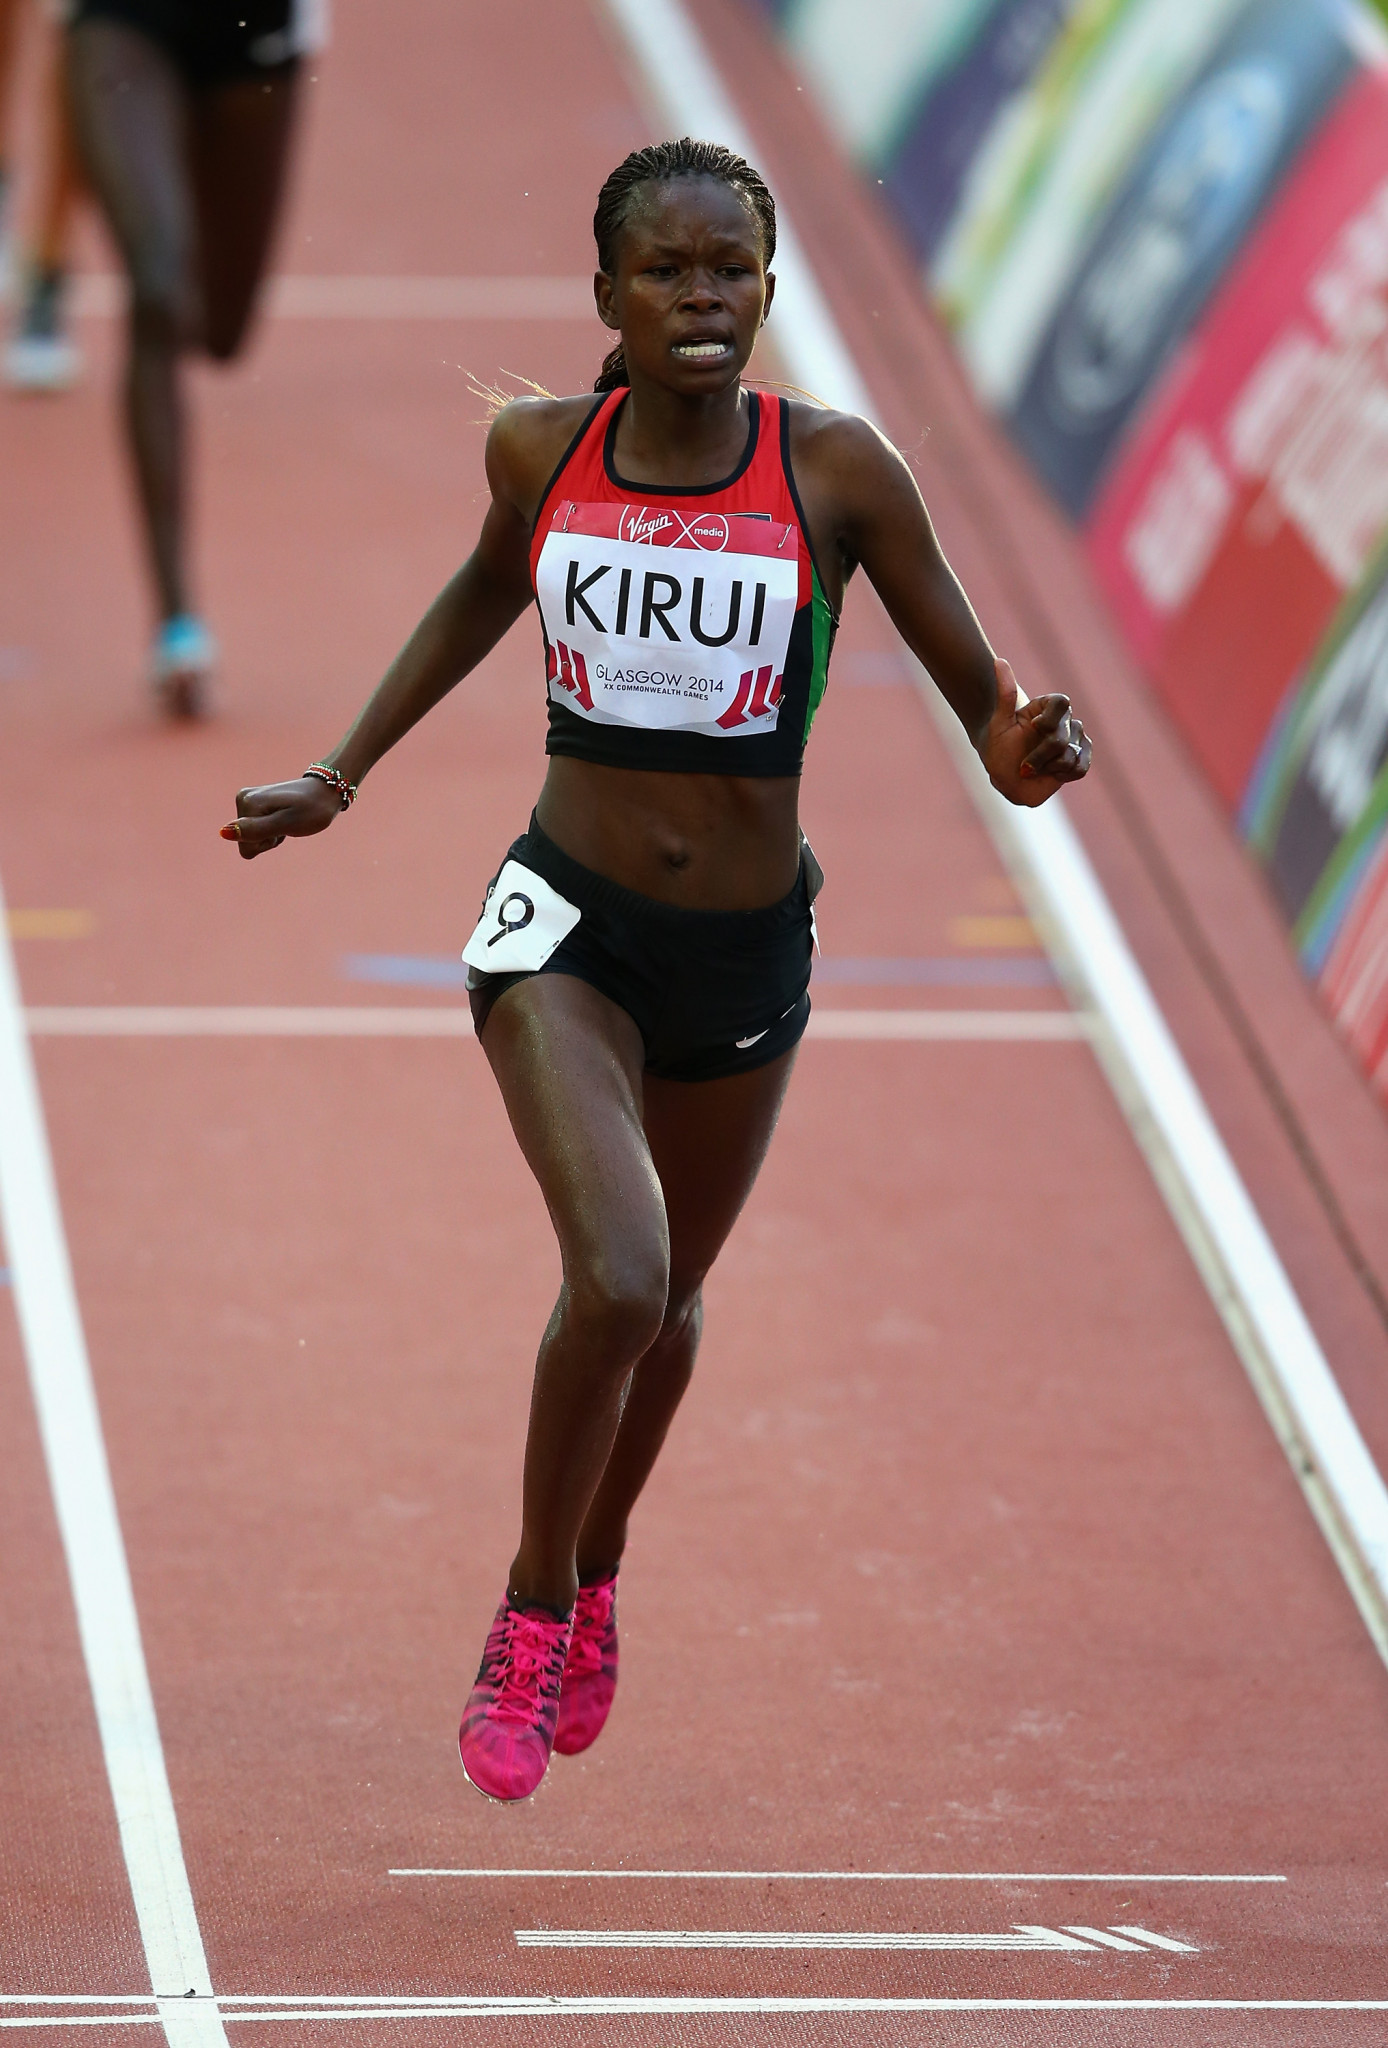 Purity Kirui, winner of the 3,000m steeplechase at Glasgow 2014, hopes to be among the champions from Kenya defending their title at Gold Coast 2018 ©Getty Images